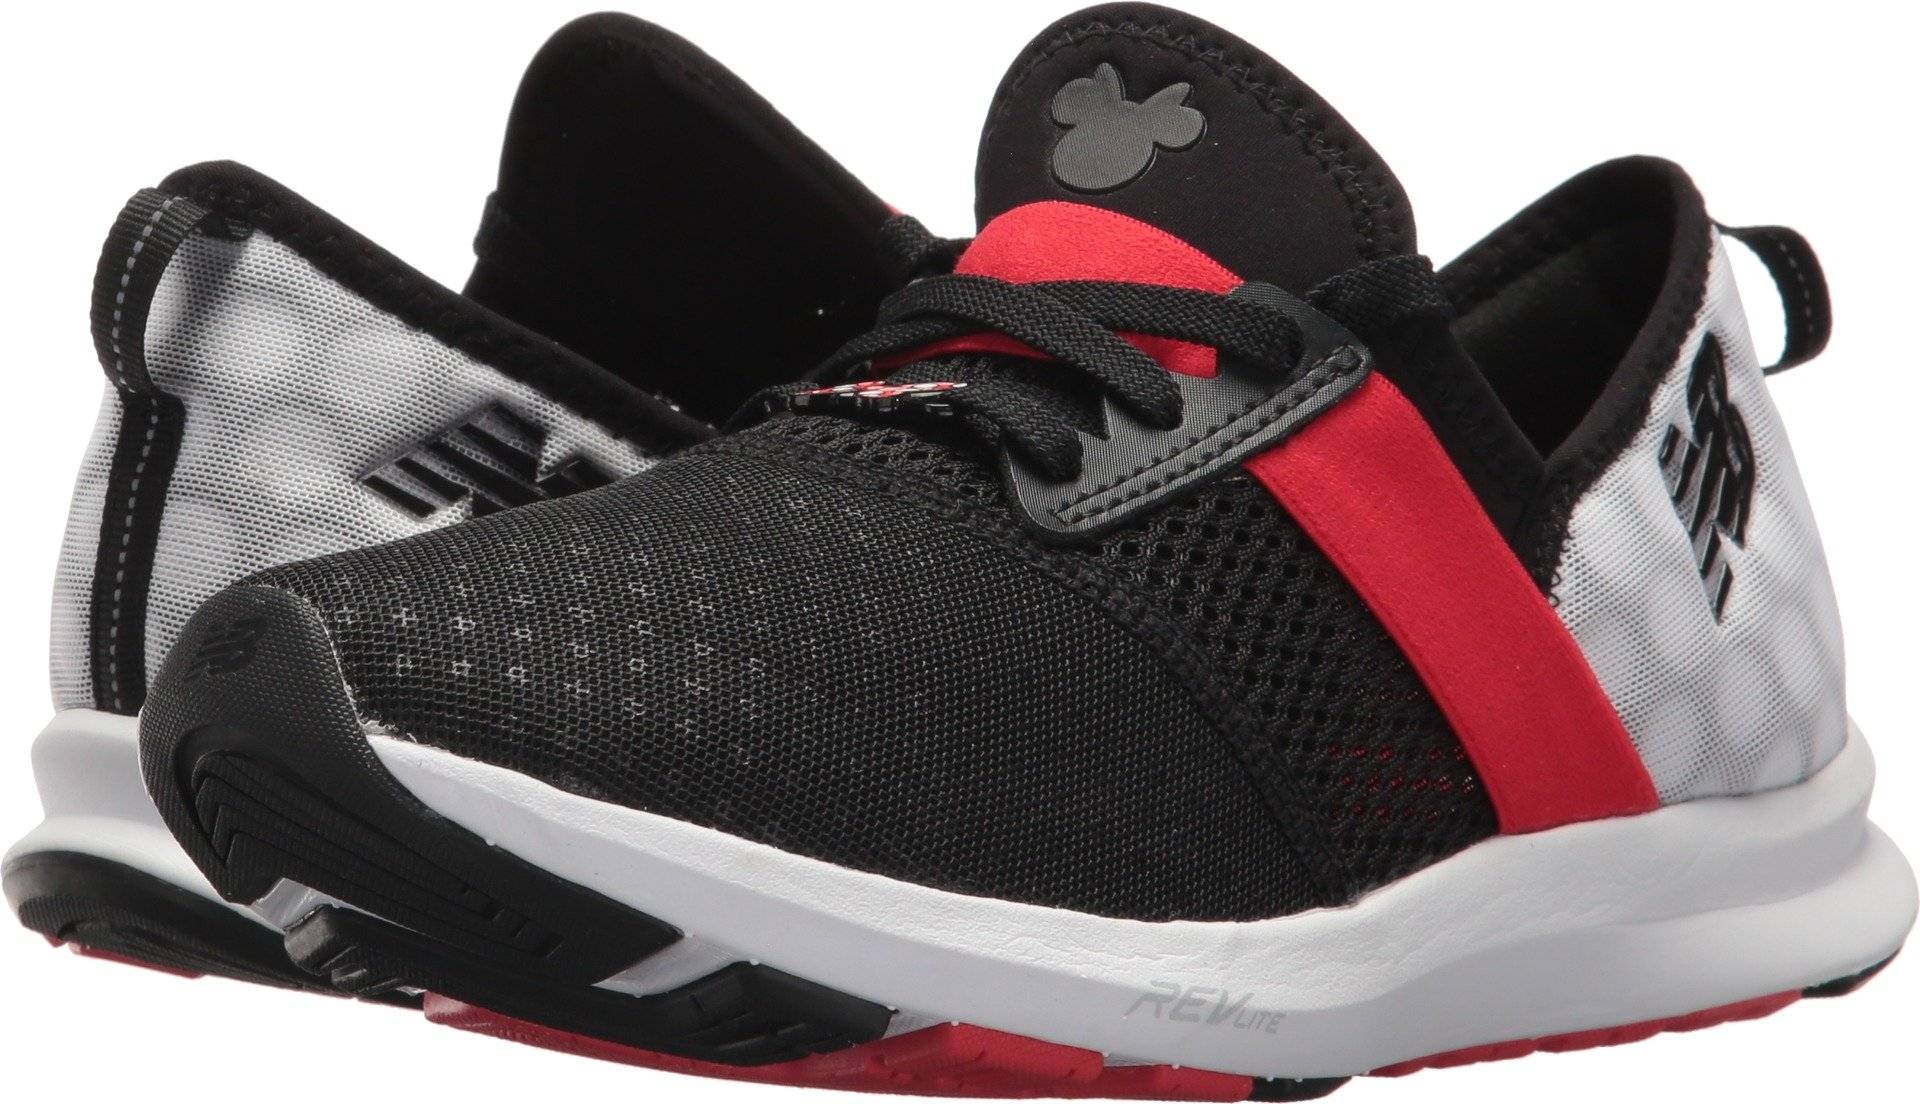 New Balance Women's Fuelcore Nergize v1 Disney Cross Trainer, Black/Red, 5 B US